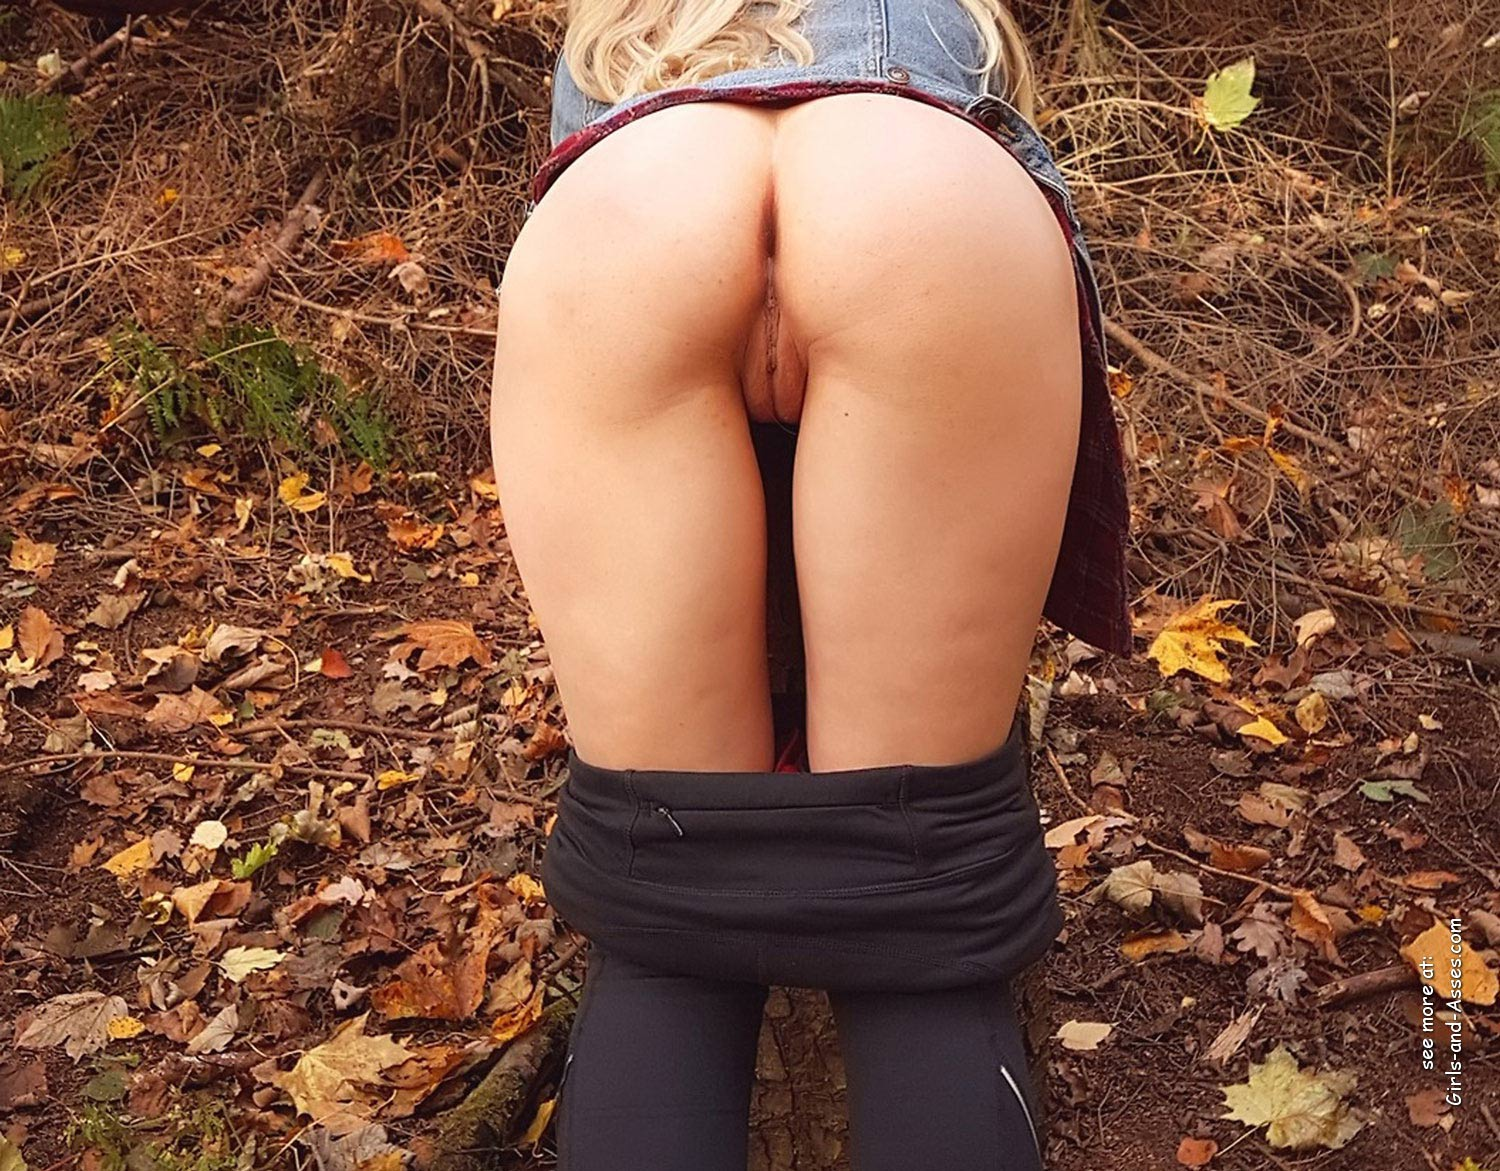 booty in the wild face down ass up picture 03638